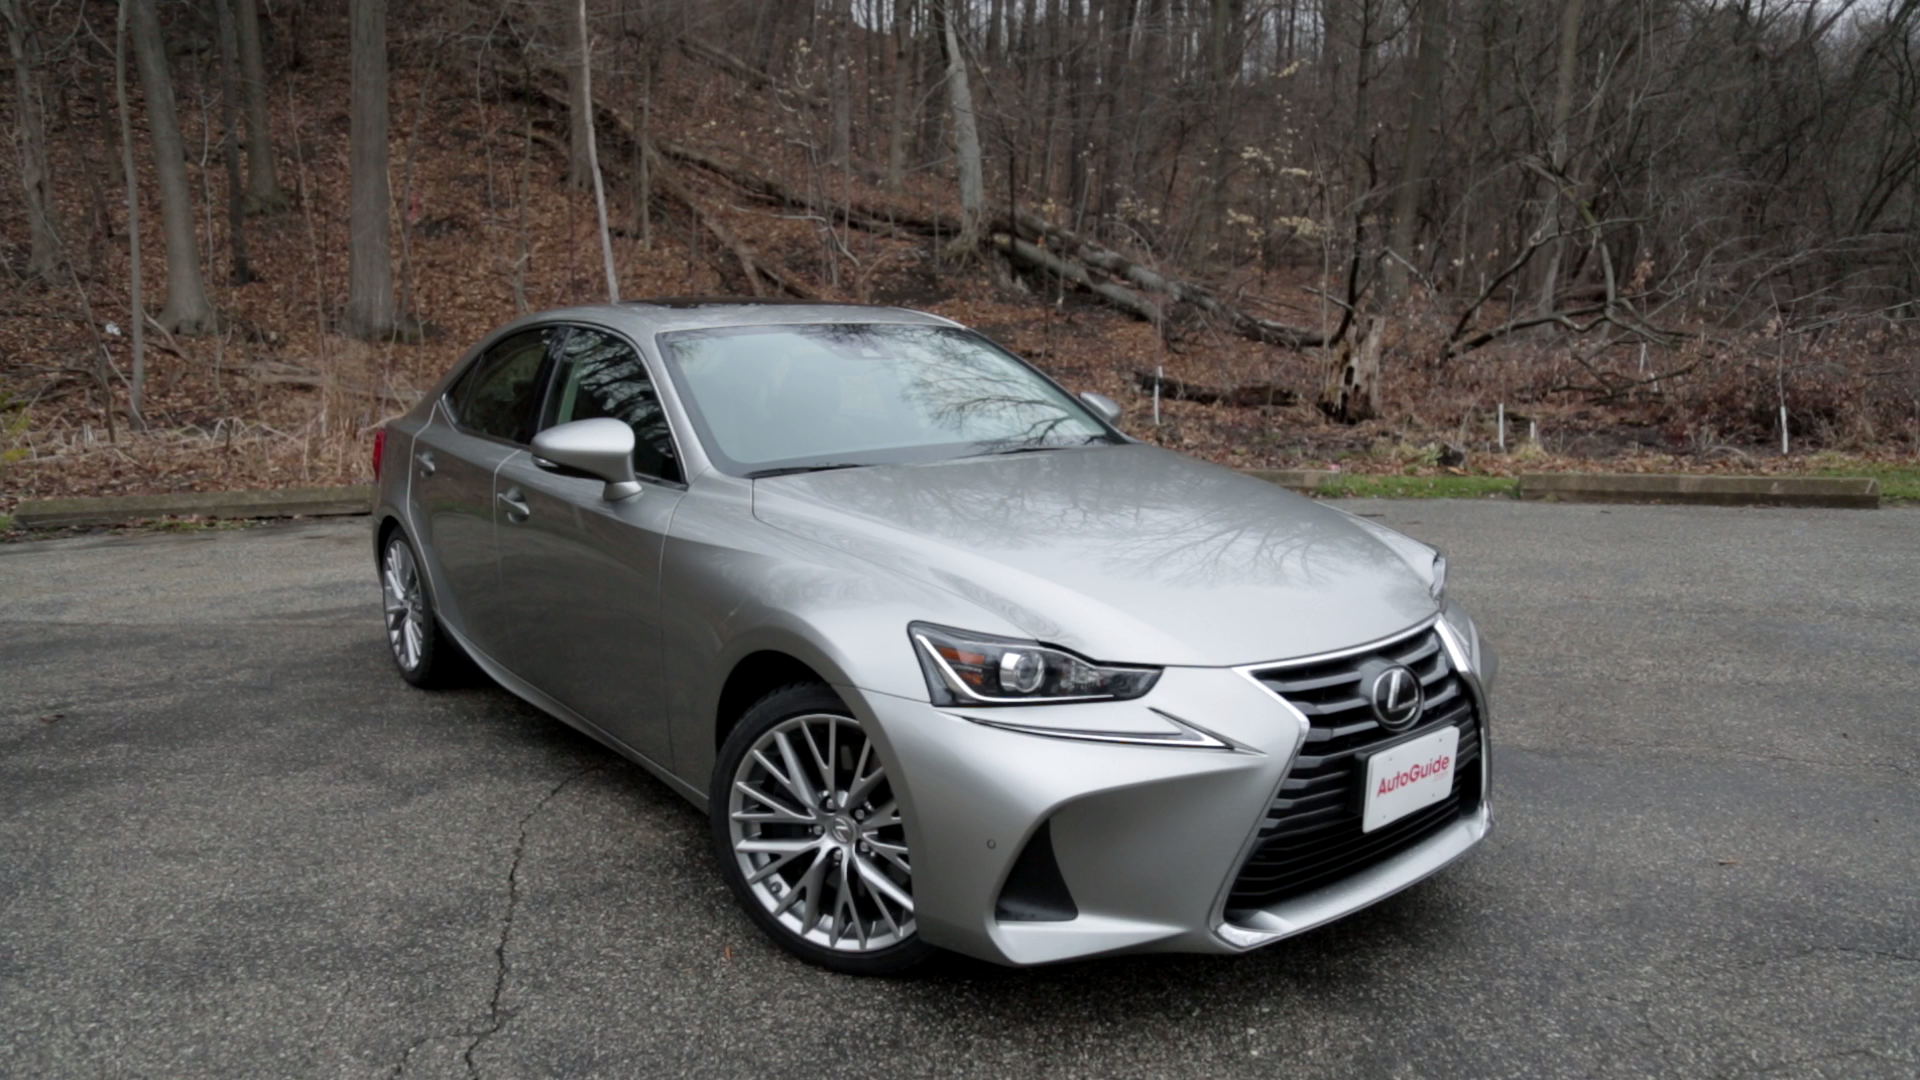 http://www.autoguide.com/blog/wp-content/gallery/2017-lexus-is-300-awd-review-rainy-photos/2017-Lexus-IS-300-AWD-Review-13.png